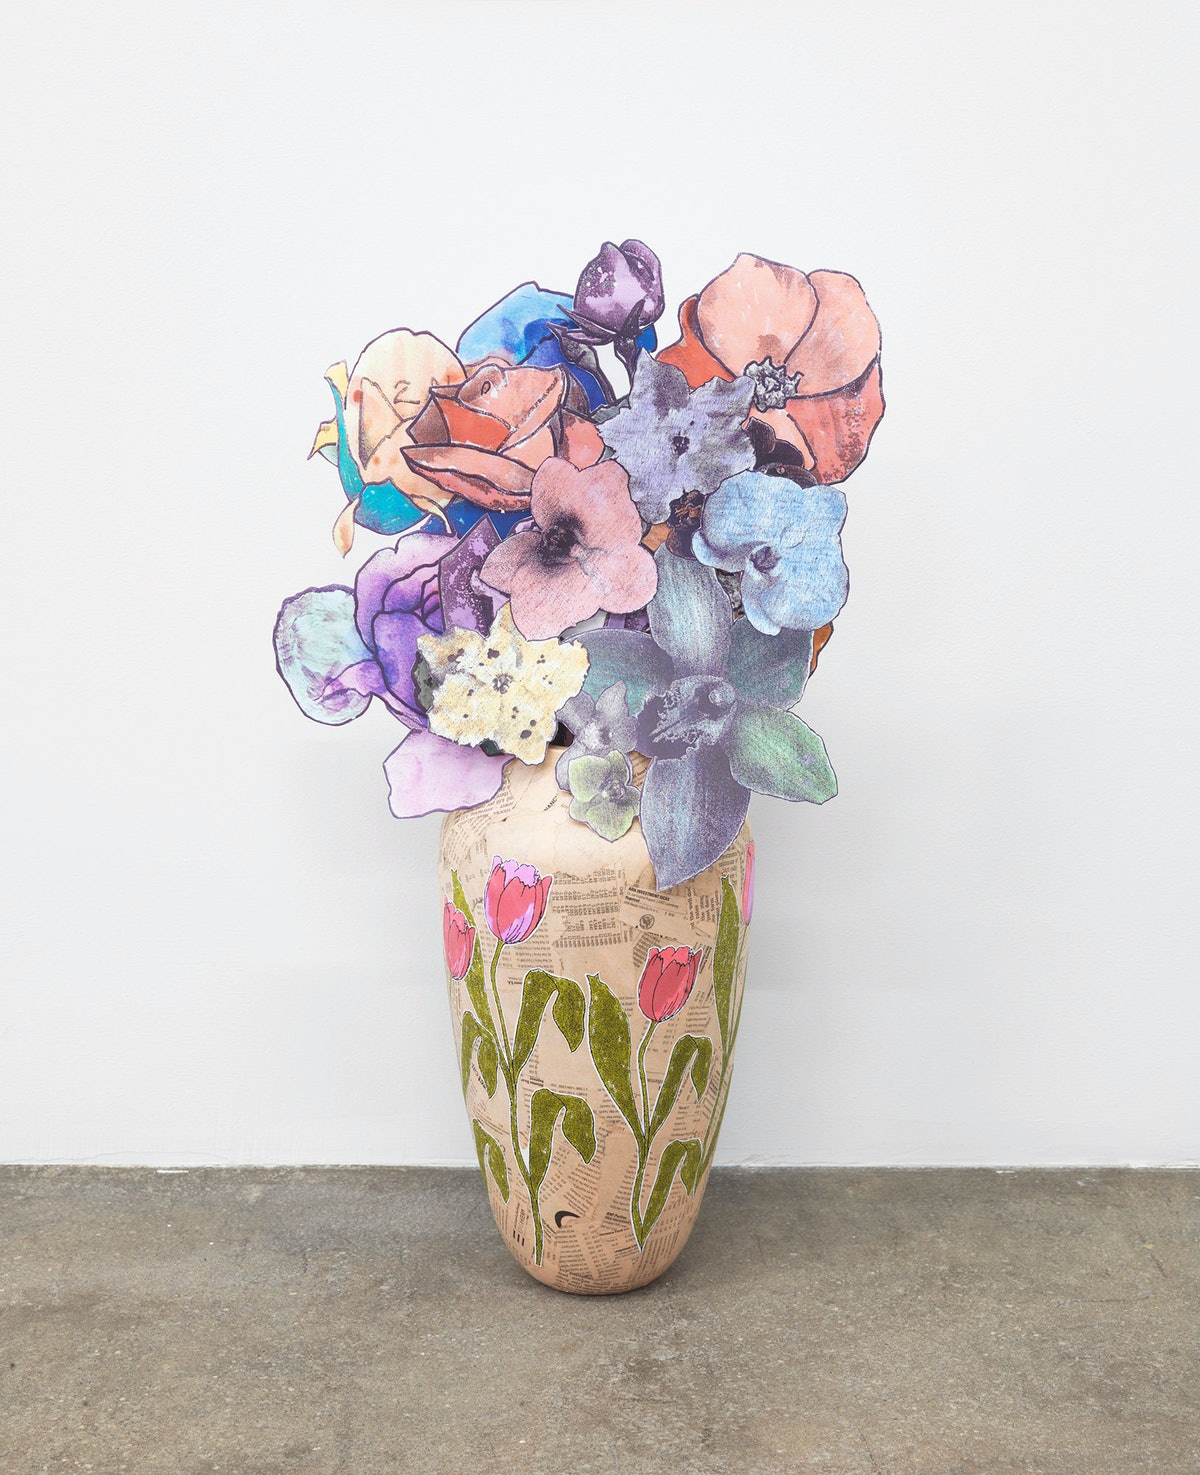 Vase (prototype) and paper bouquet, 1997-2014 by Marc Camille Chaimowicz